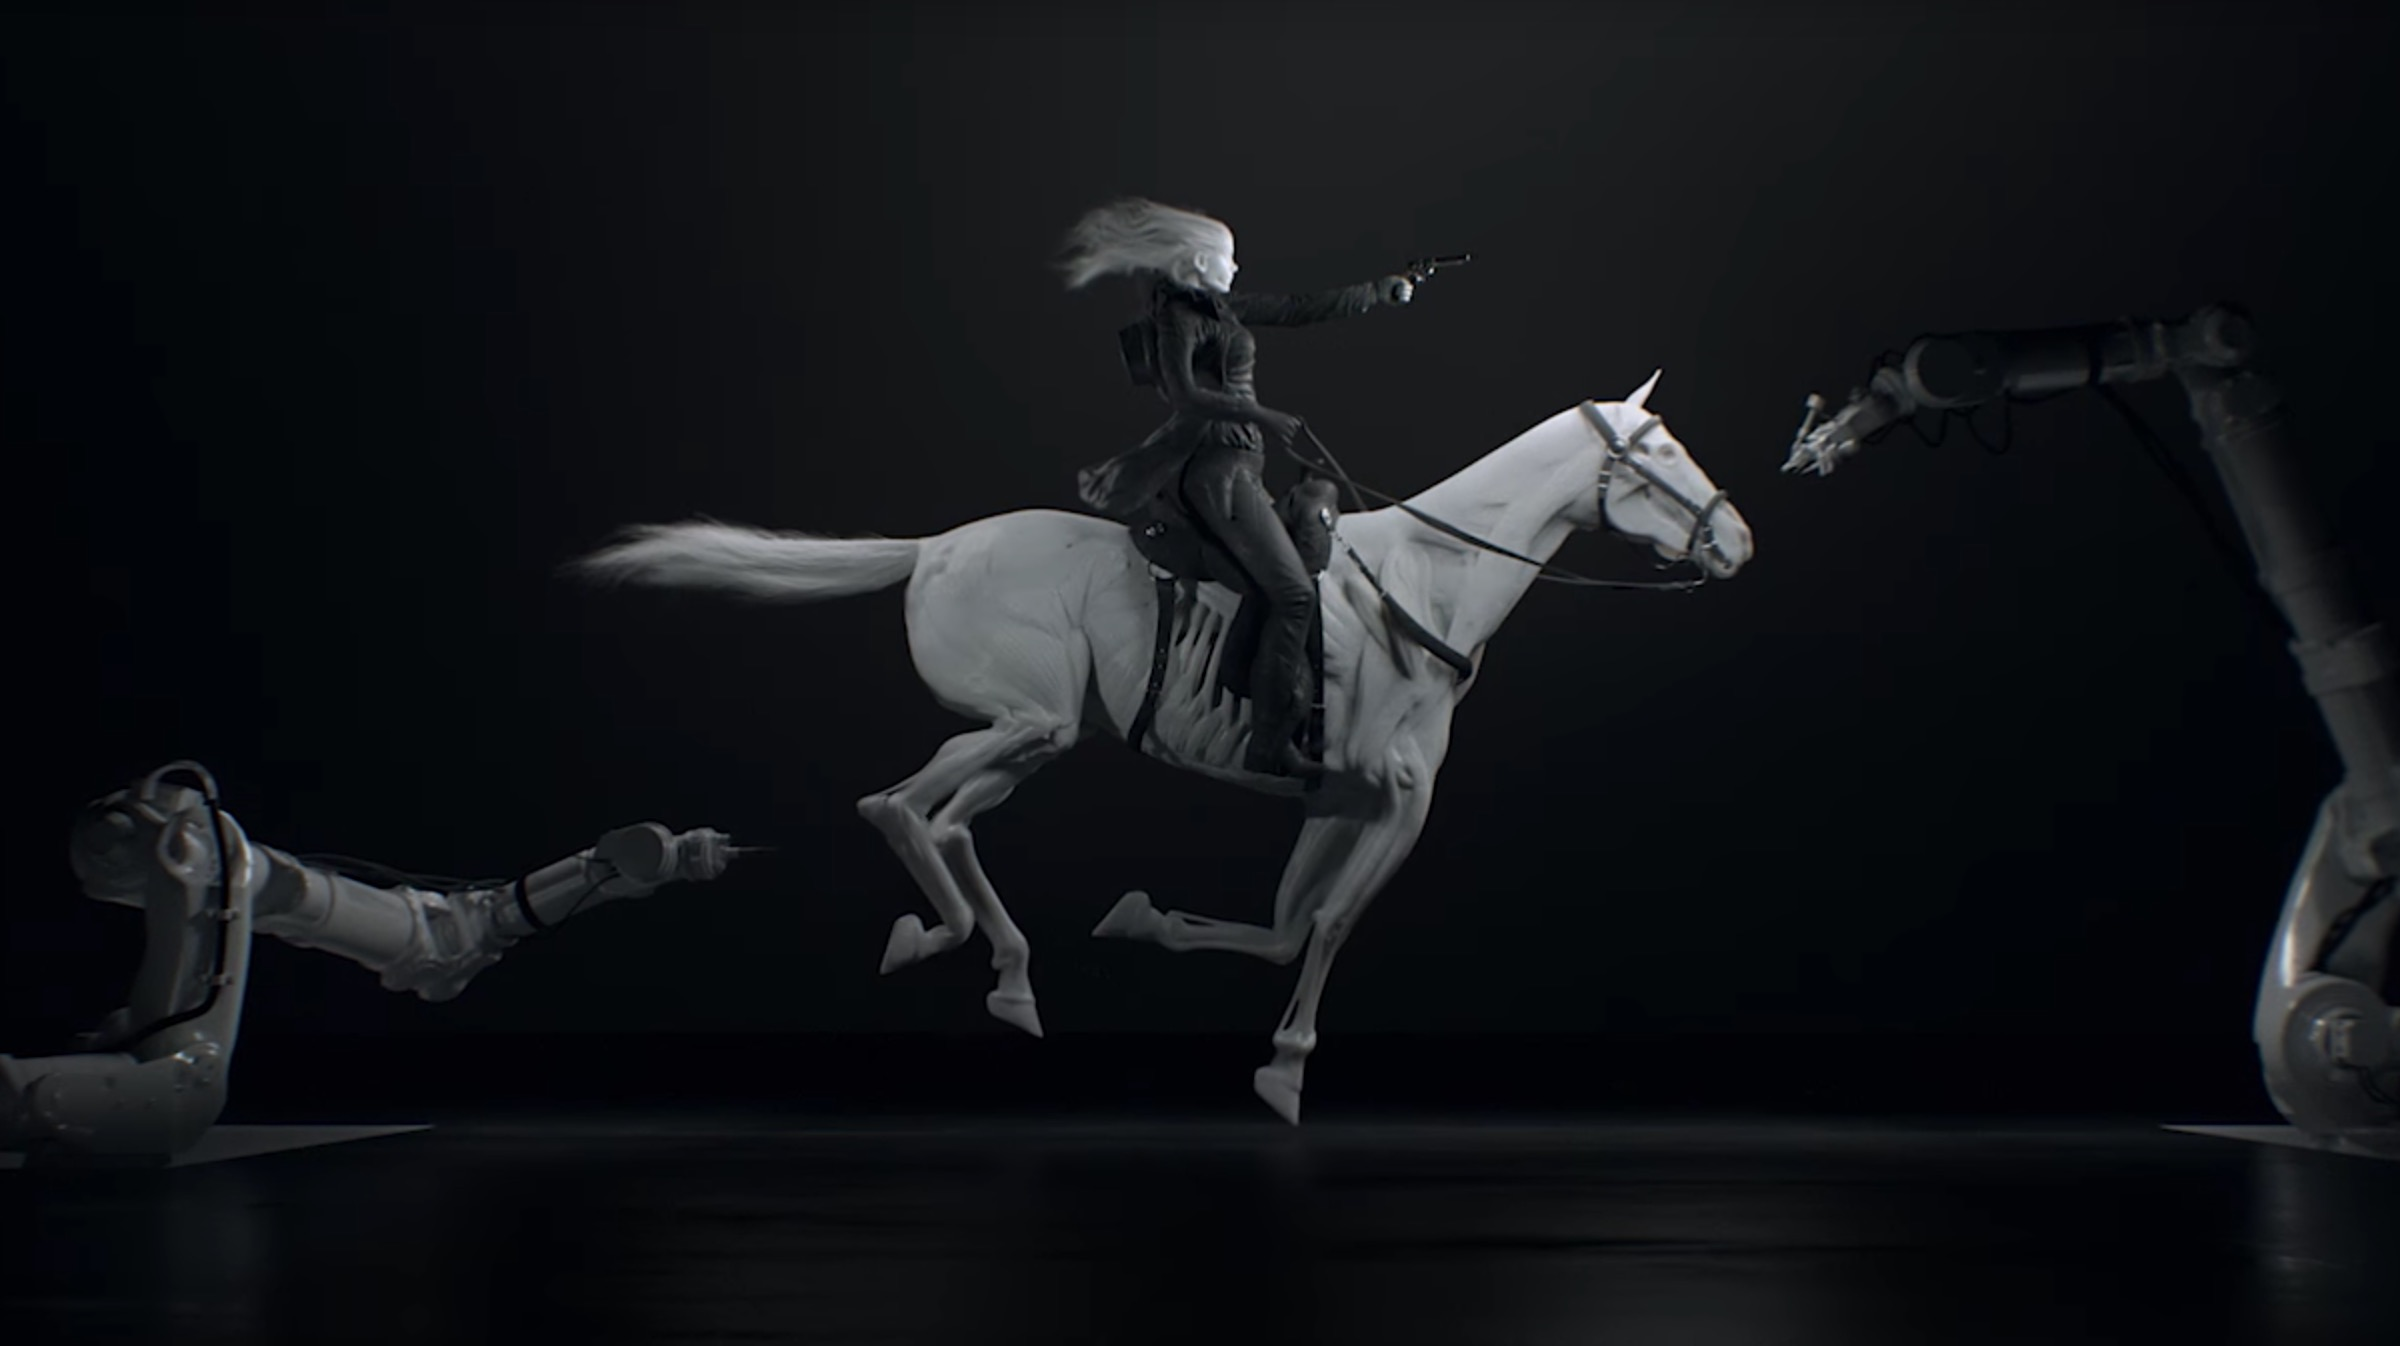 Robotic arms produce a 3D printed horse robot on HBO's Westworld series